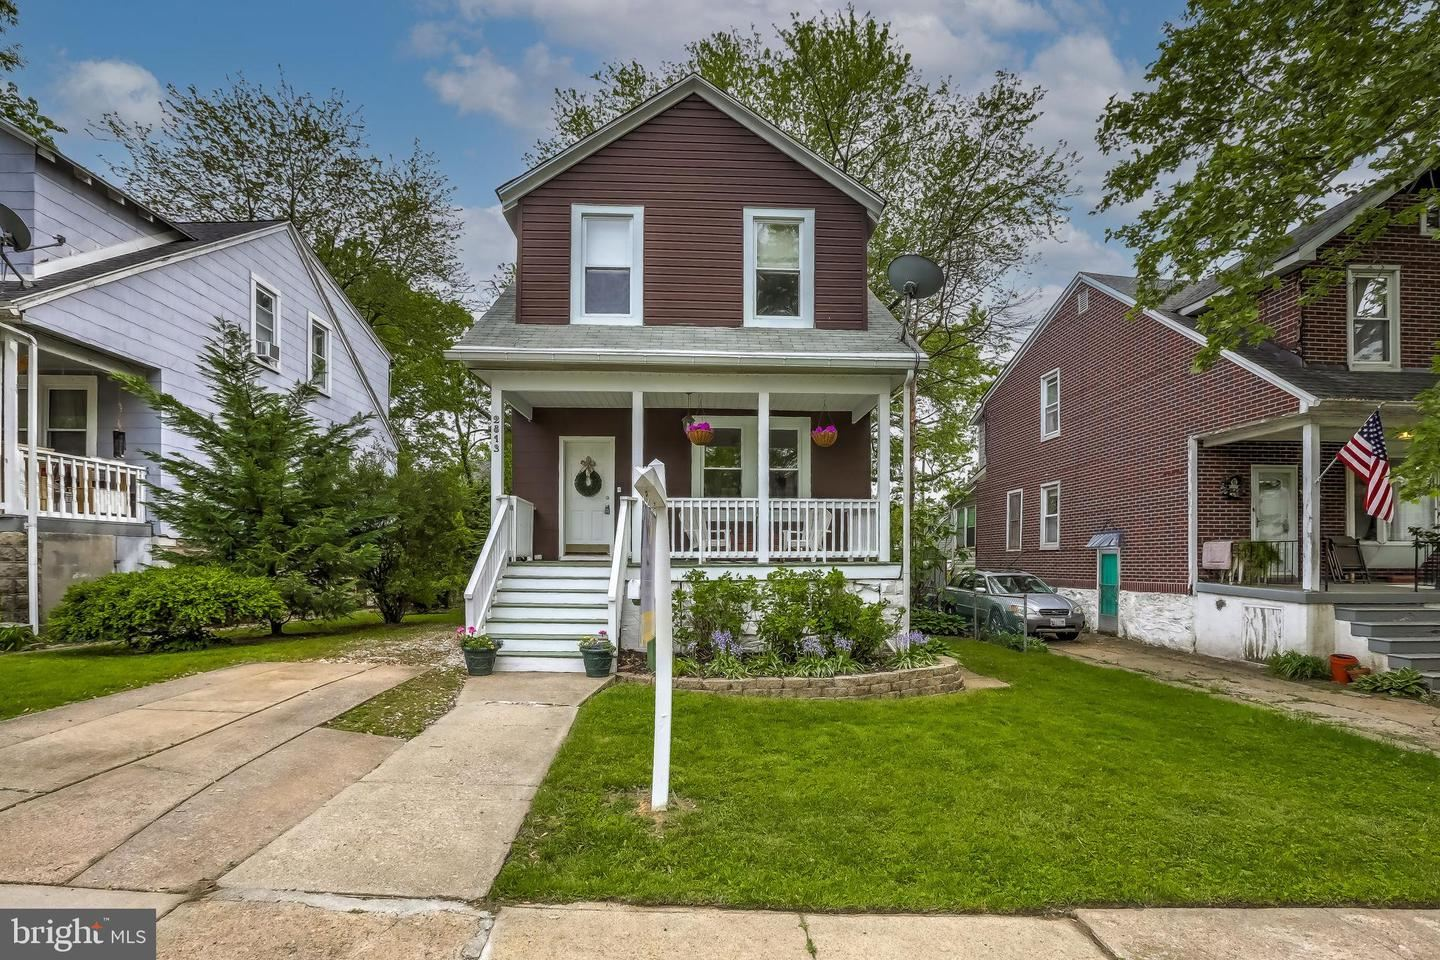 2813 CHRISTOPHER AVE, Baltimore, MD 21214 - MLS#: MDBA548372